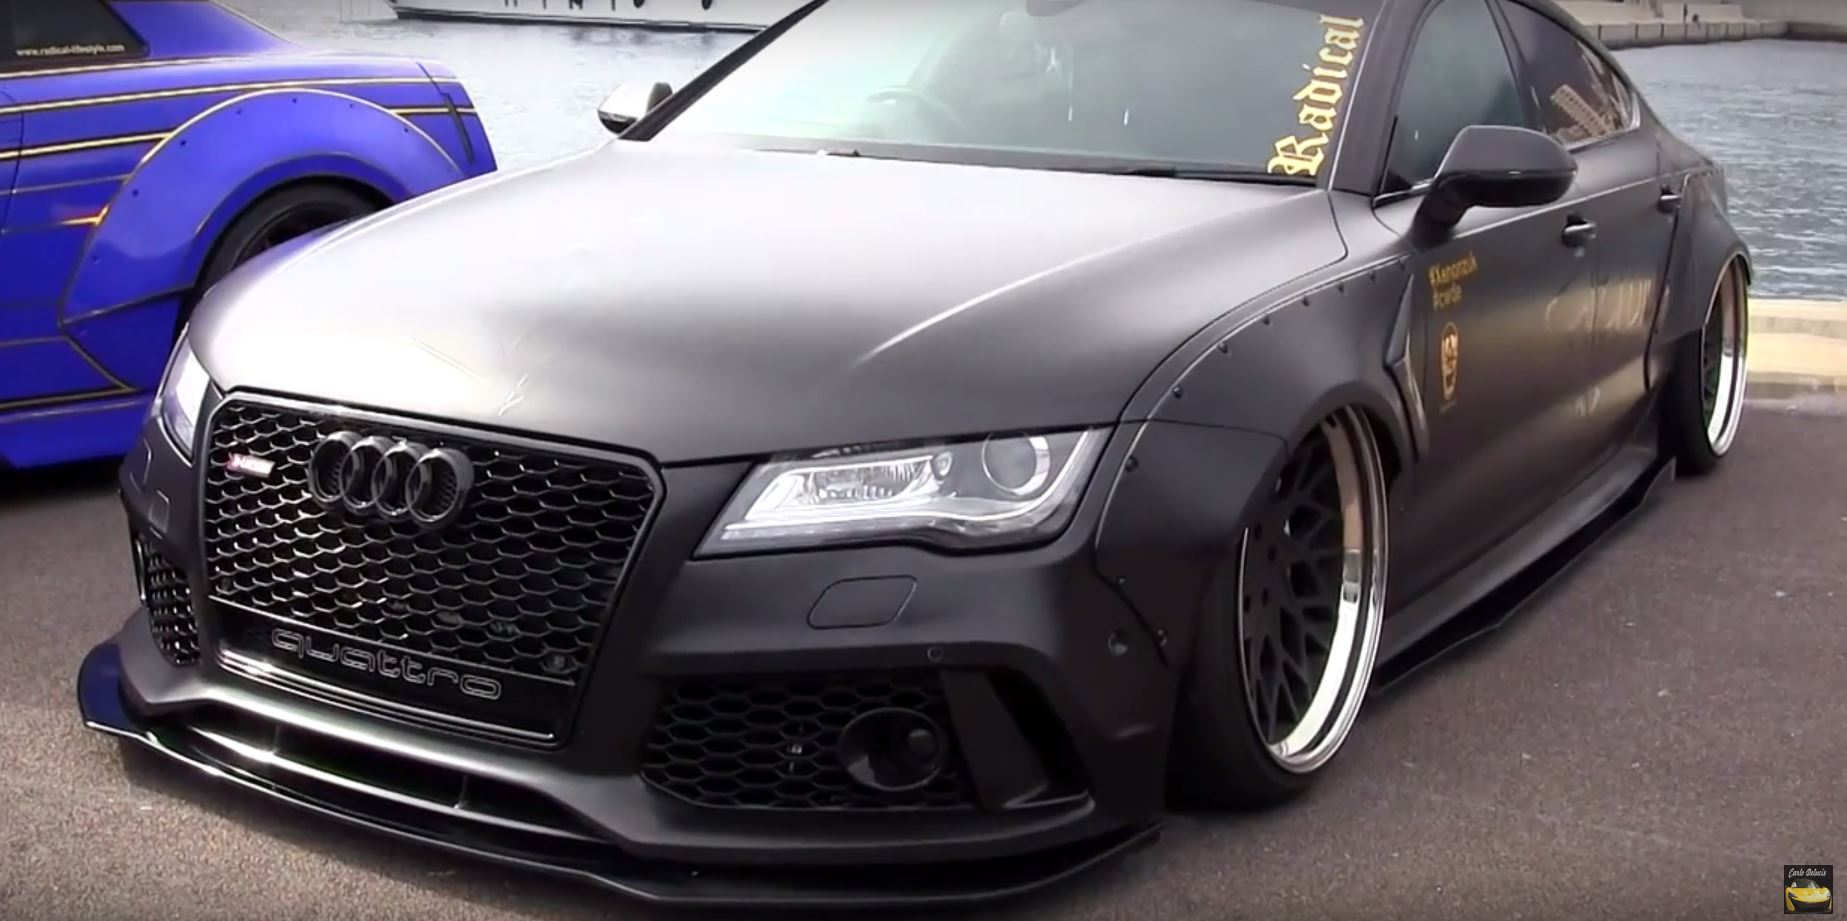 Audi Quot Rs7 Quot Tdi Has Rocket Bunny Kit Air Suspension And